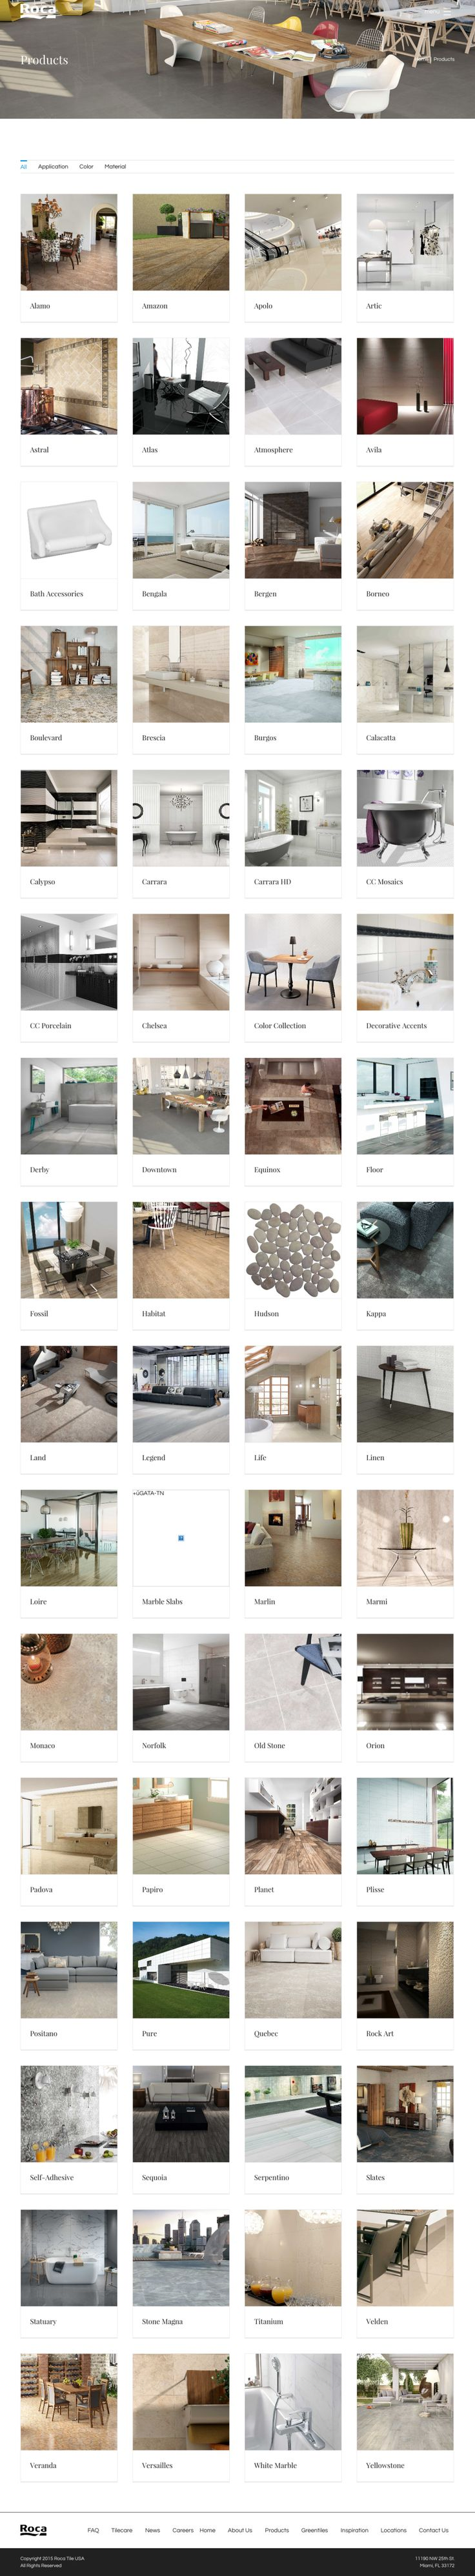 Website redesign and makeover for ROCA Tiles USA by The Line Between: http://rocatilegroup.com/